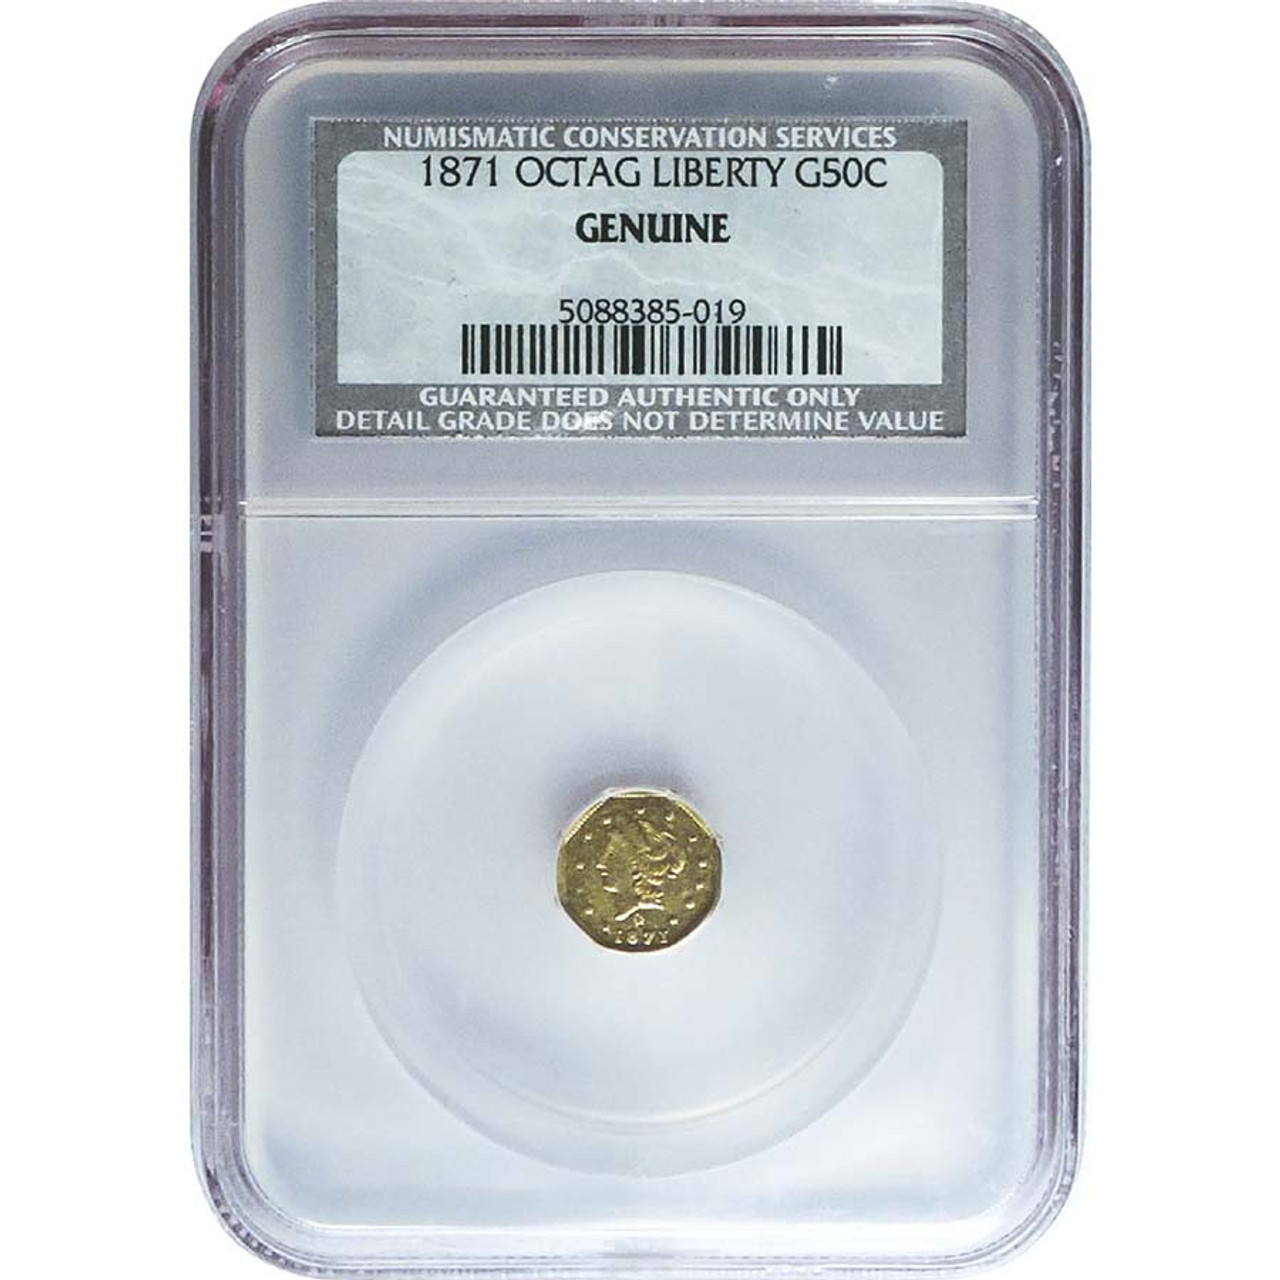 1852-1875 Fractional Octagonal Half Dollar Gold, NCS Certified Genuine